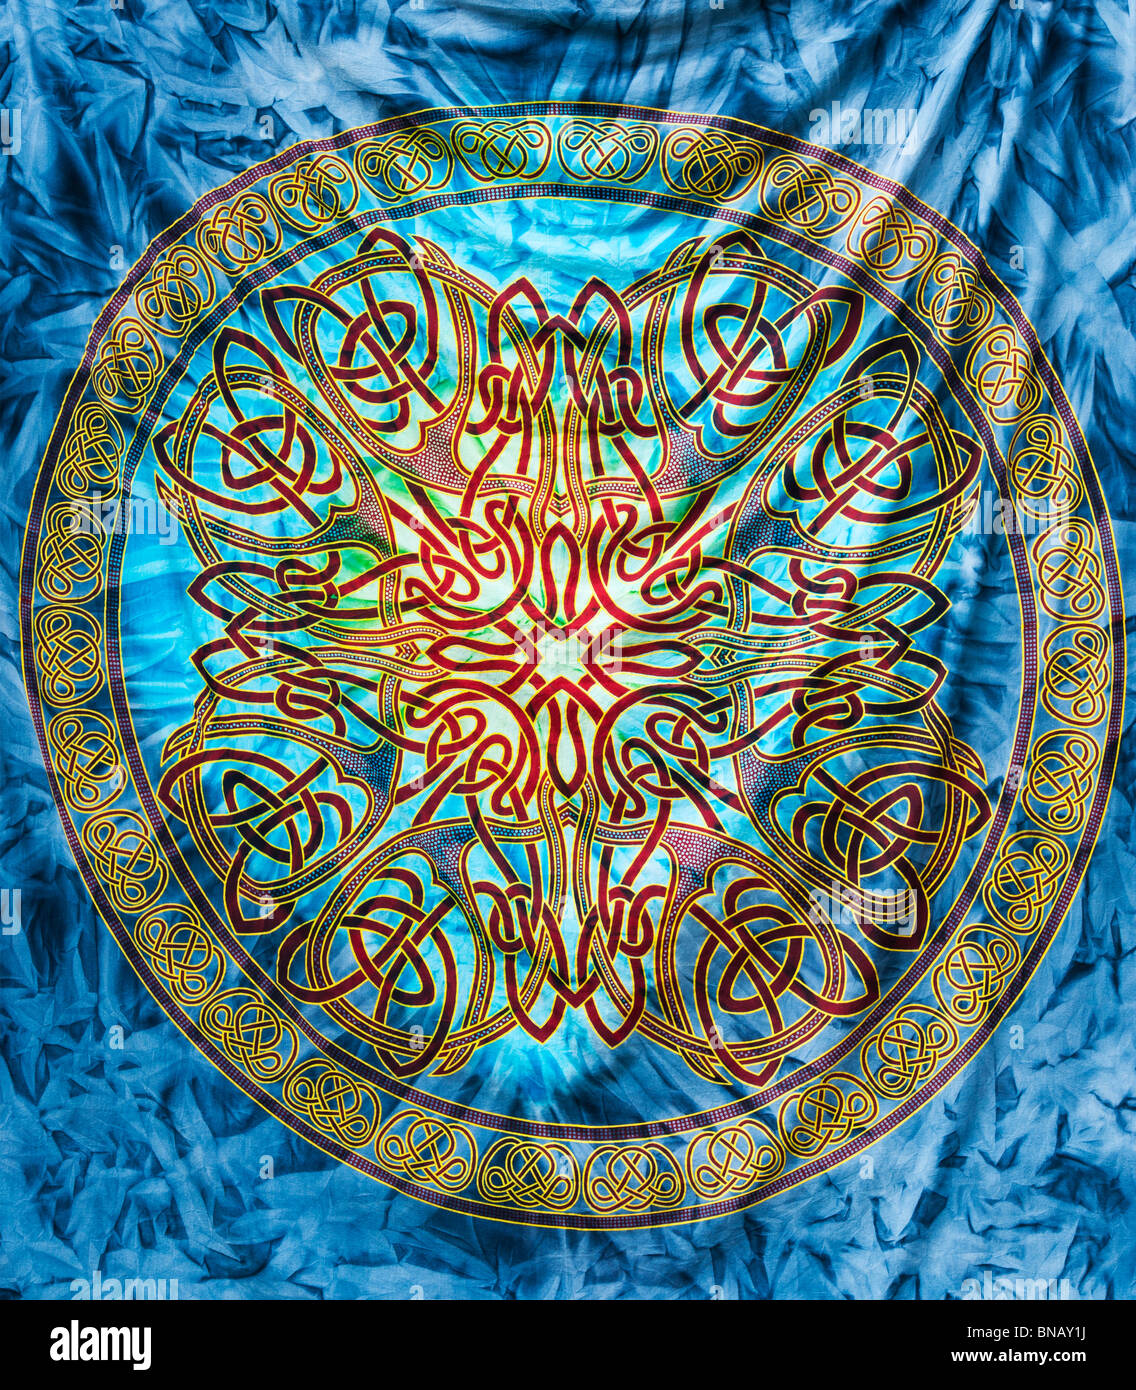 Colourful Celtic knotwork bedspread pattern - Stock Image